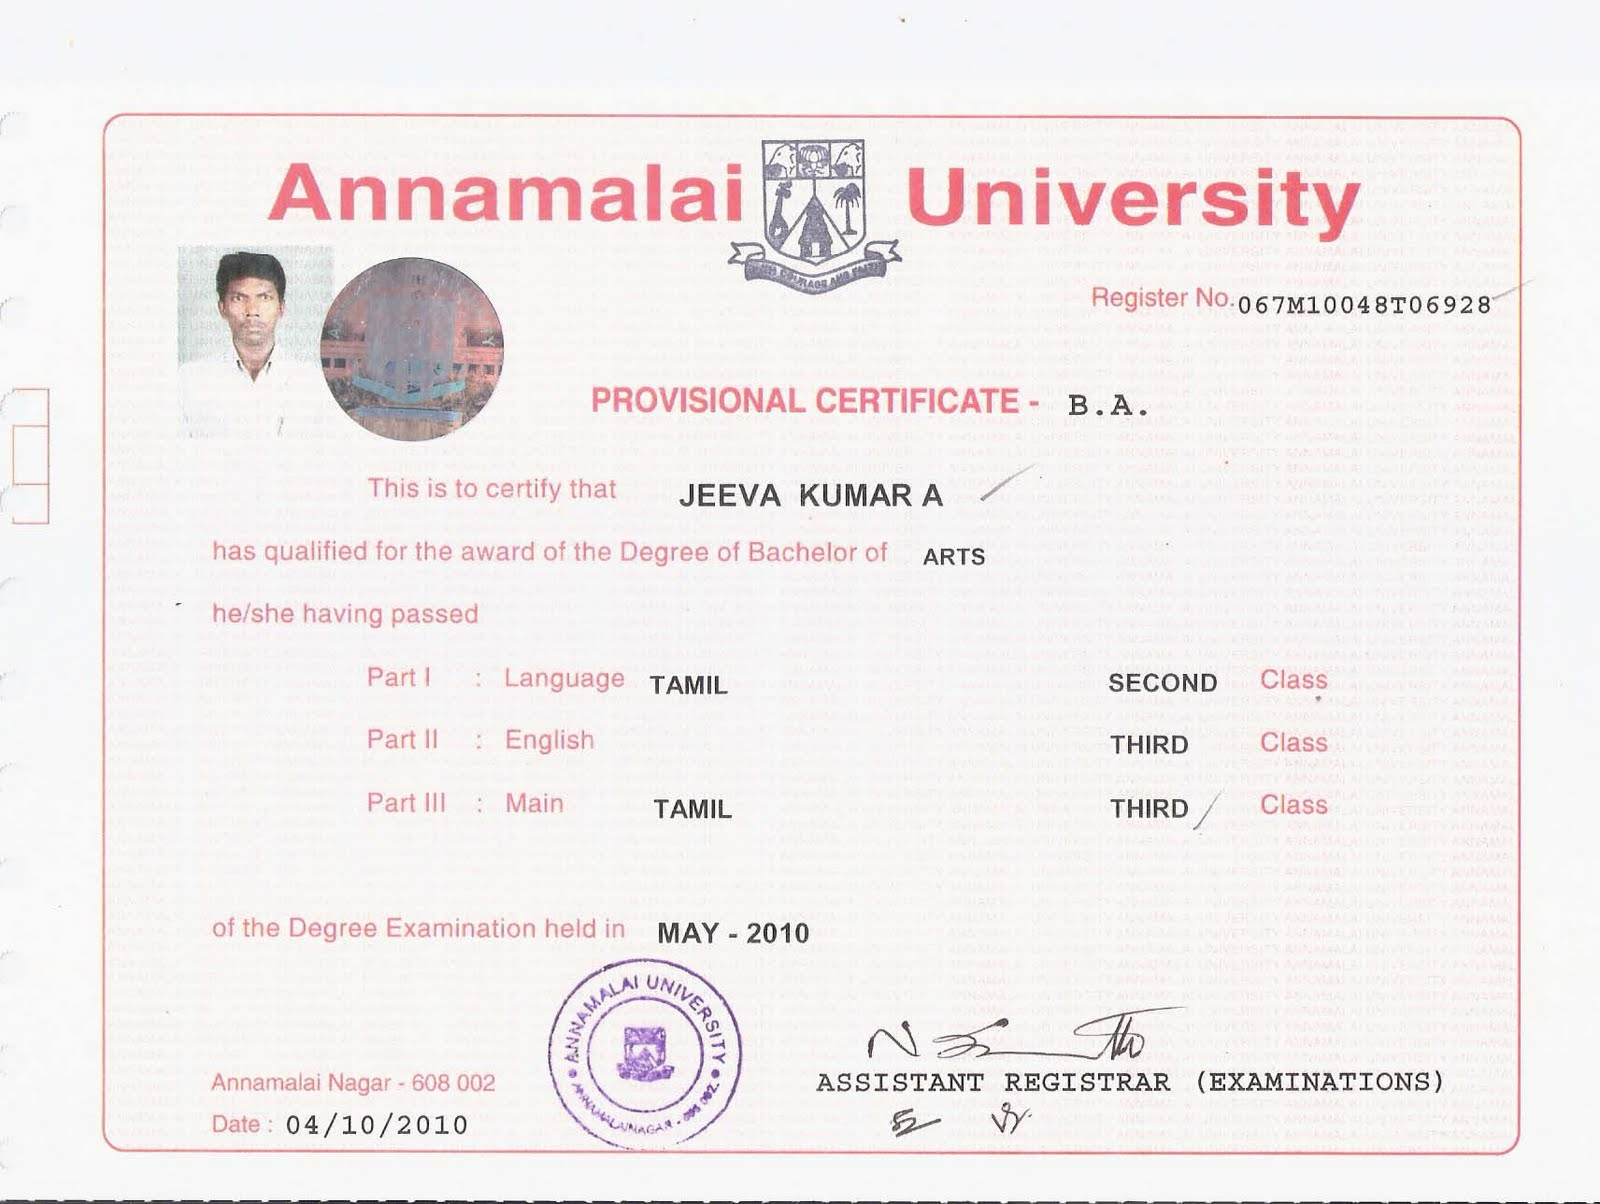 Education degree vinayaka mission distance education degree pictures of vinayaka mission distance education degree certificate yadclub Choice Image